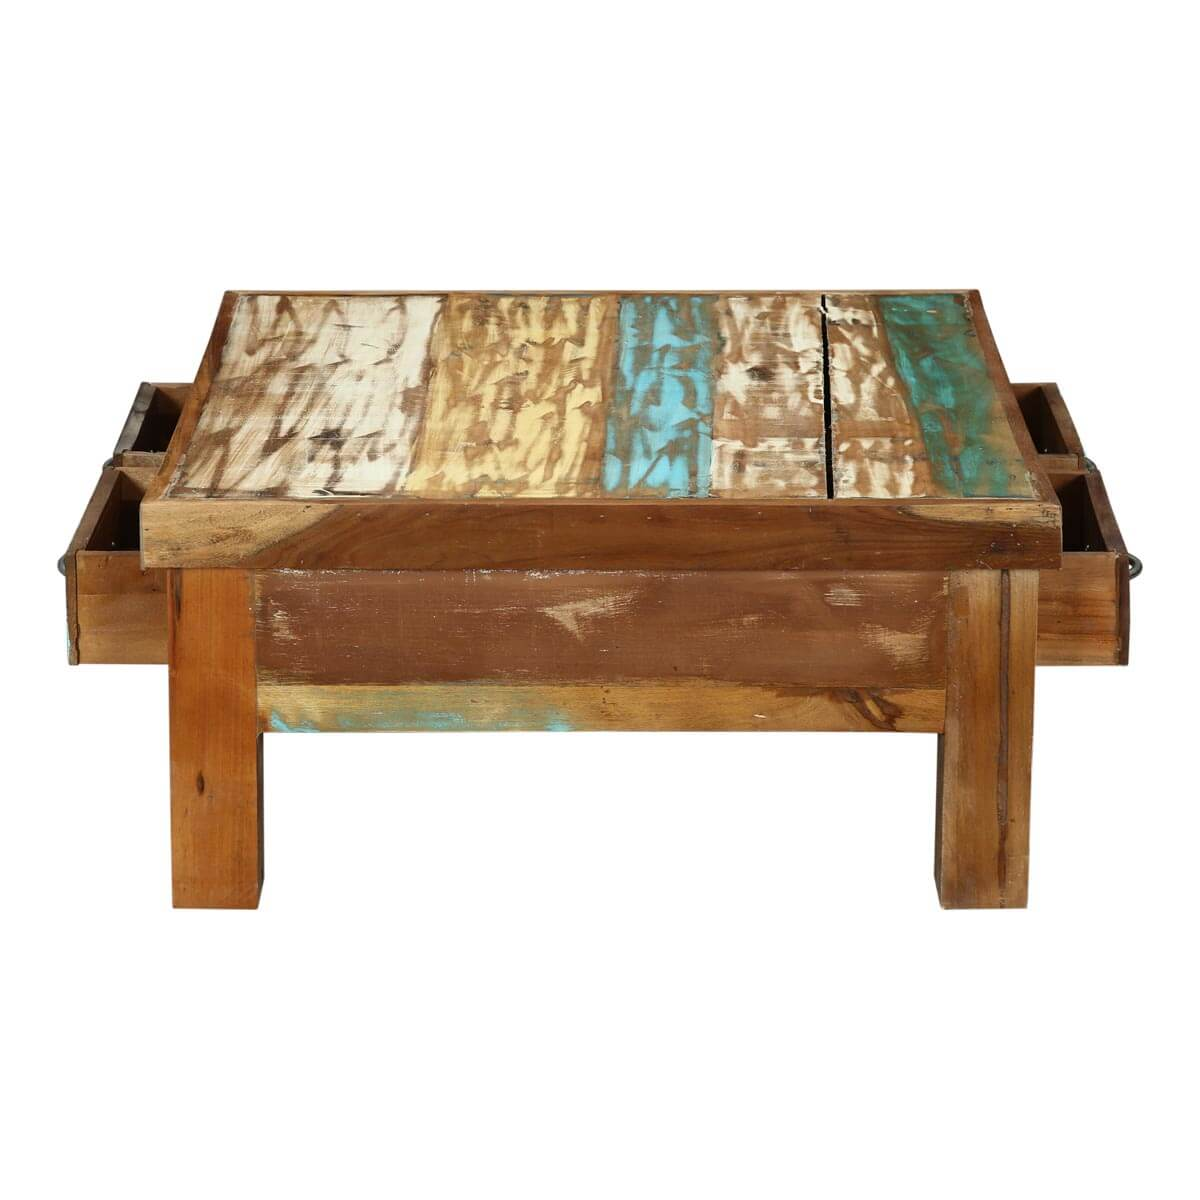 Seoul Rustic Reclaimed Wood 4 Drawer Coffee Table